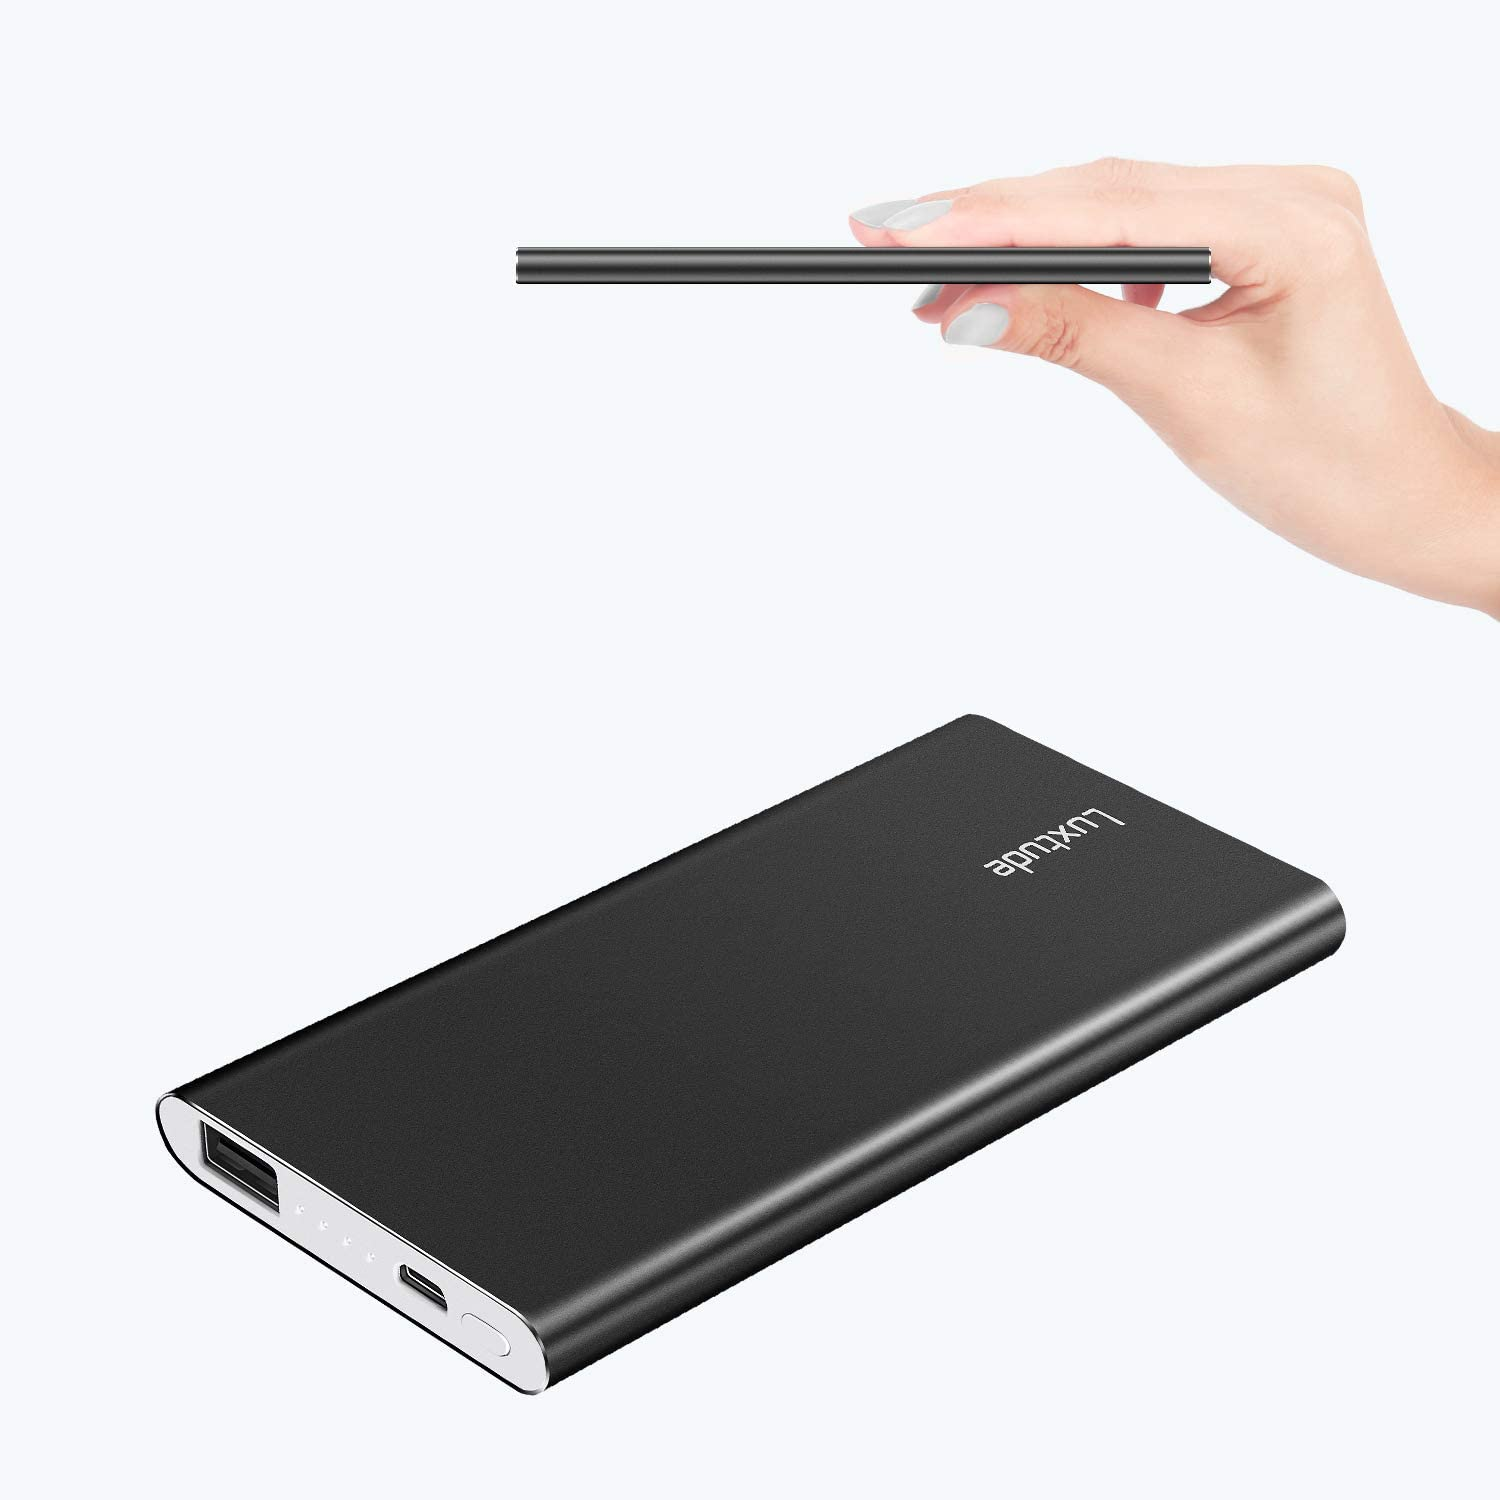 Luxtude Ultra Slim Portable Charger, 5000mAh Lightweight 2.Black (on sale)